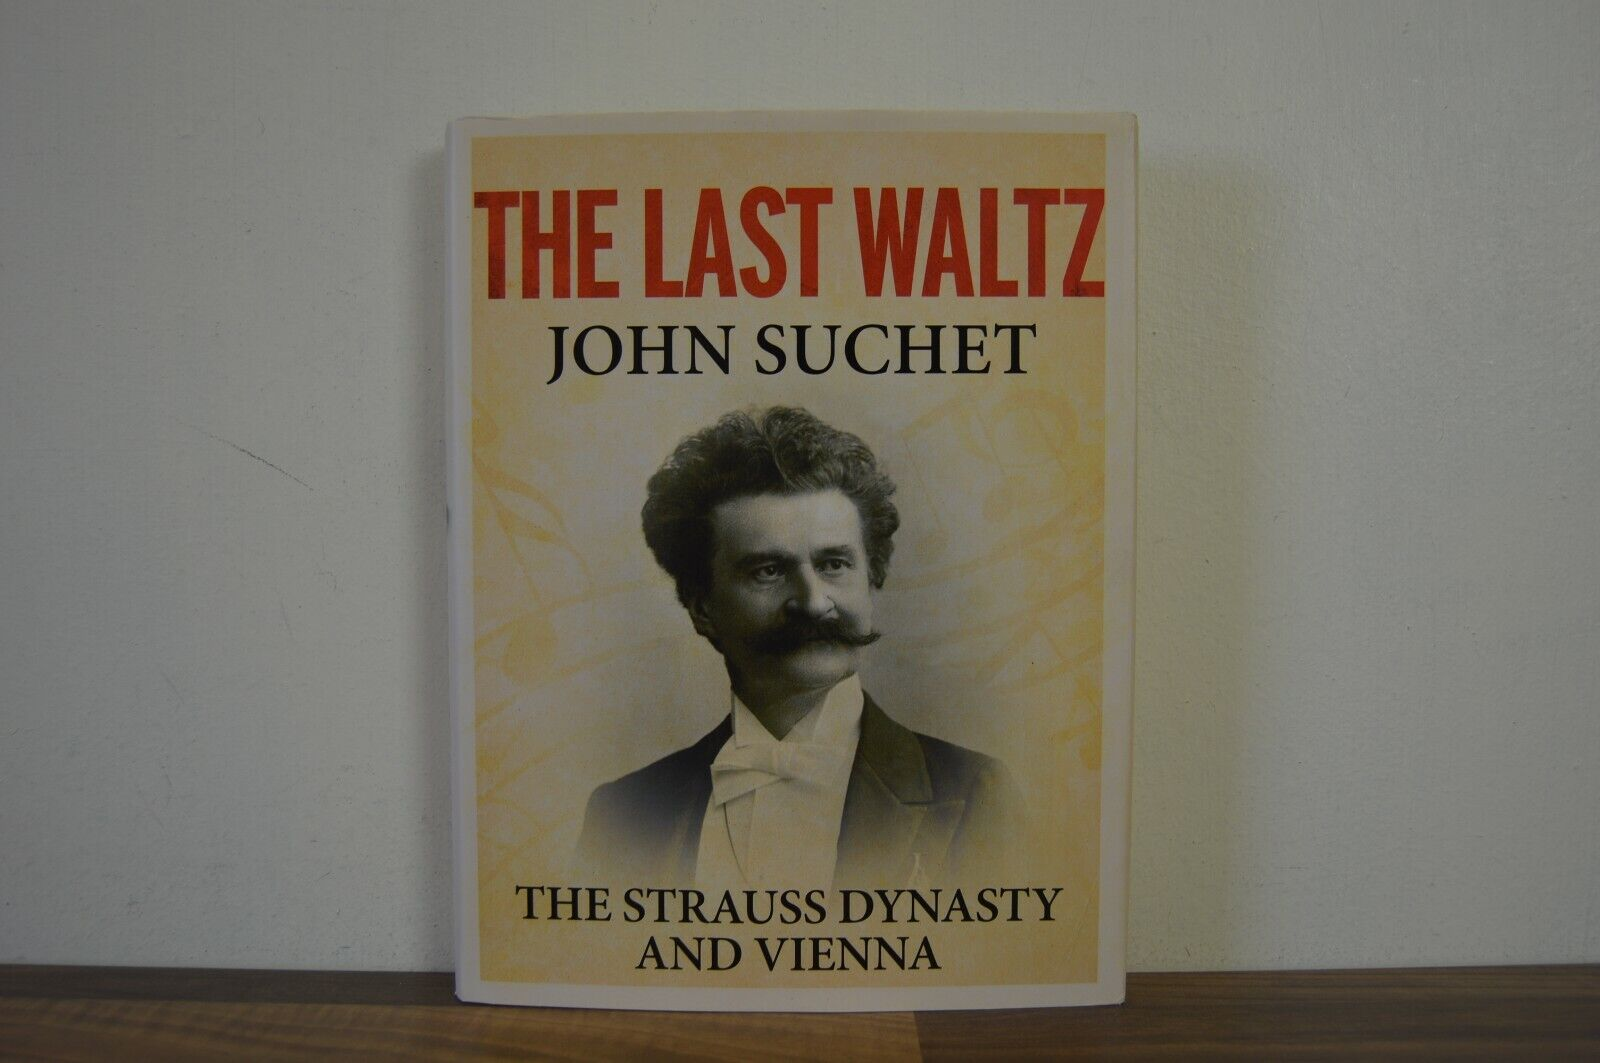 The Last Waltz The Strauss Dynasty and Vienna